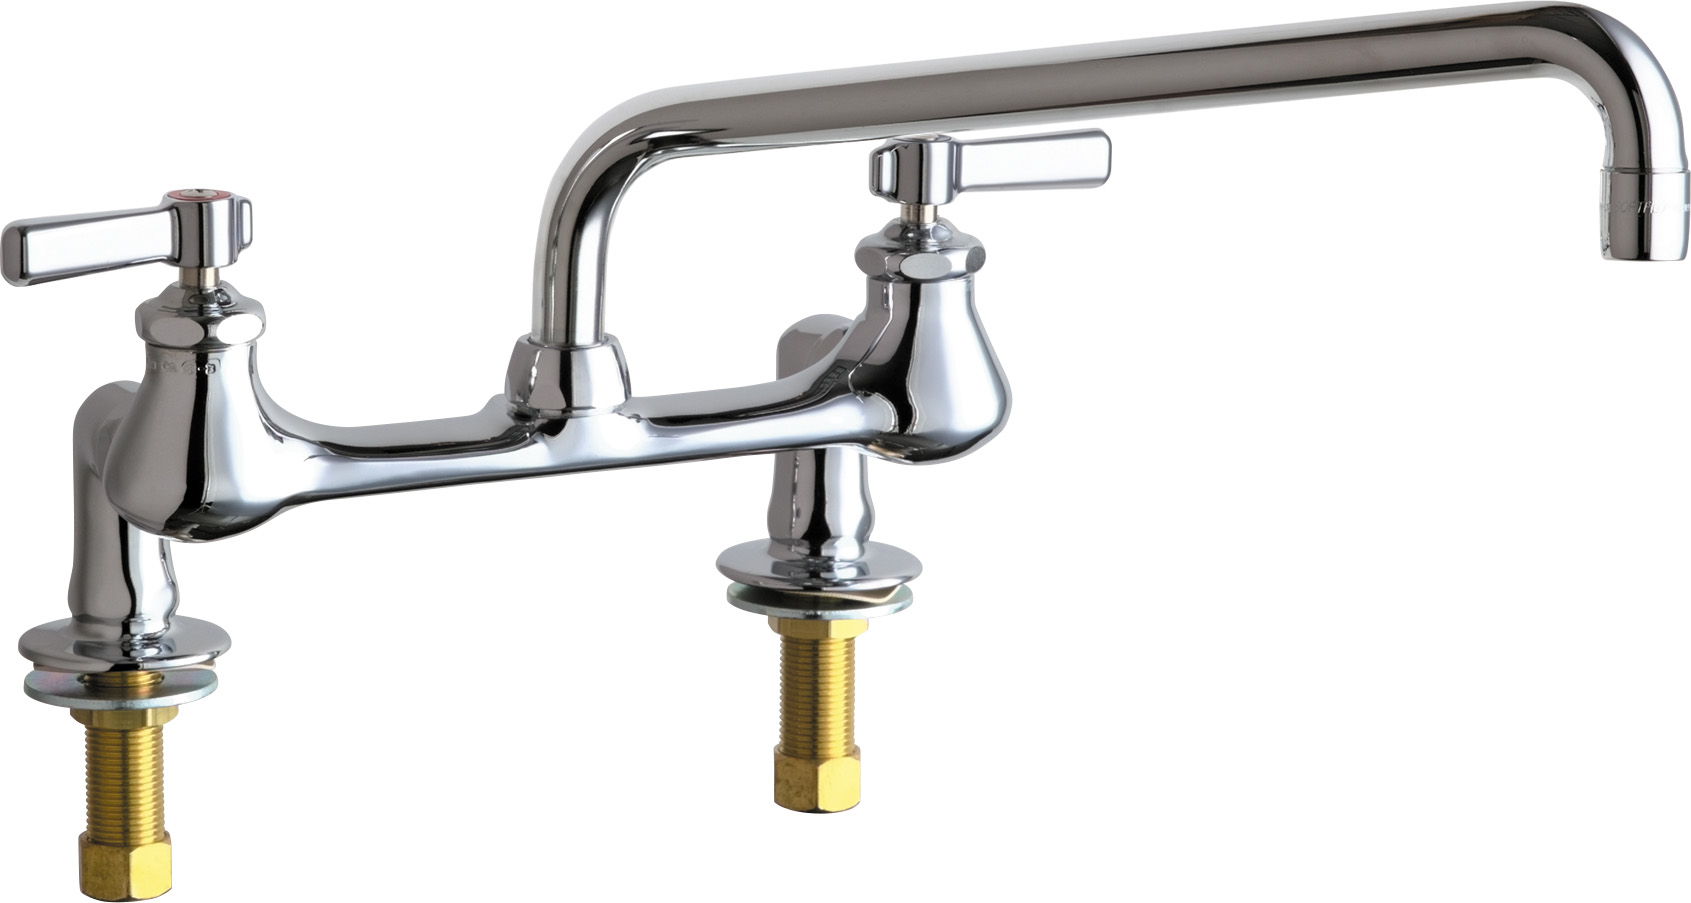 Deck-mounted manual laboratory faucet with 8